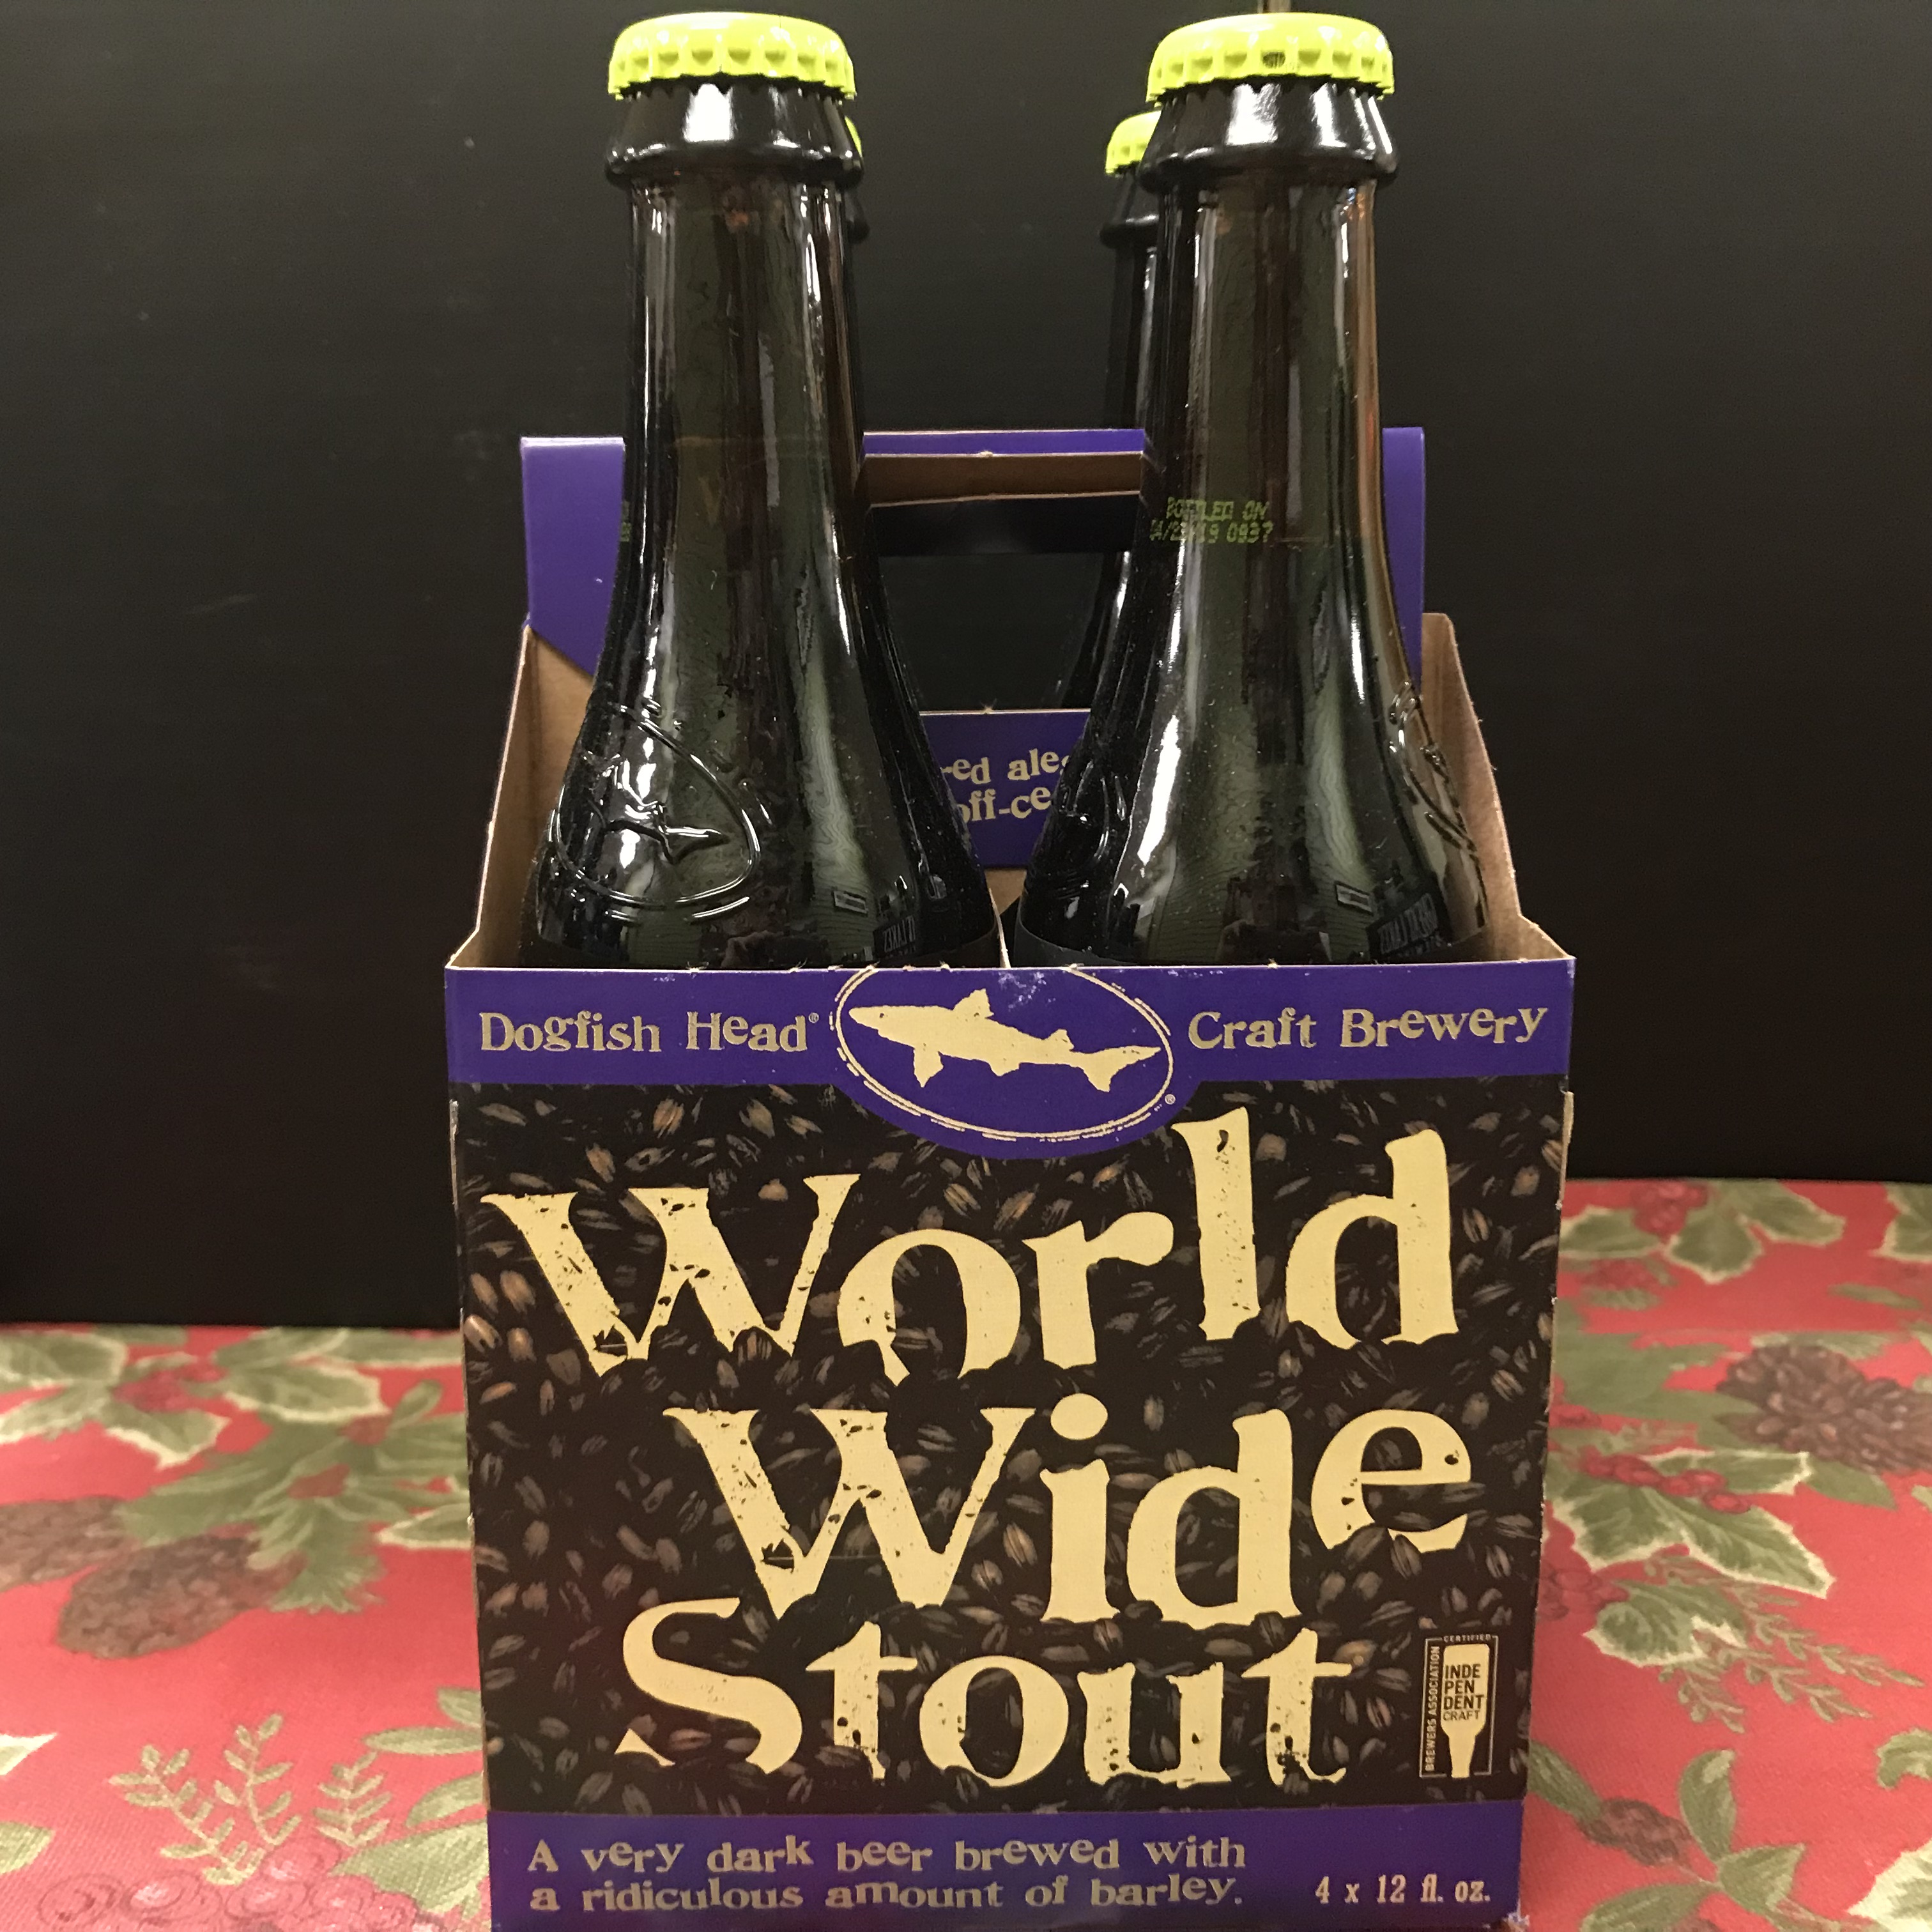 Dogfish Head World Wide Stout 4 x 12oz bottles